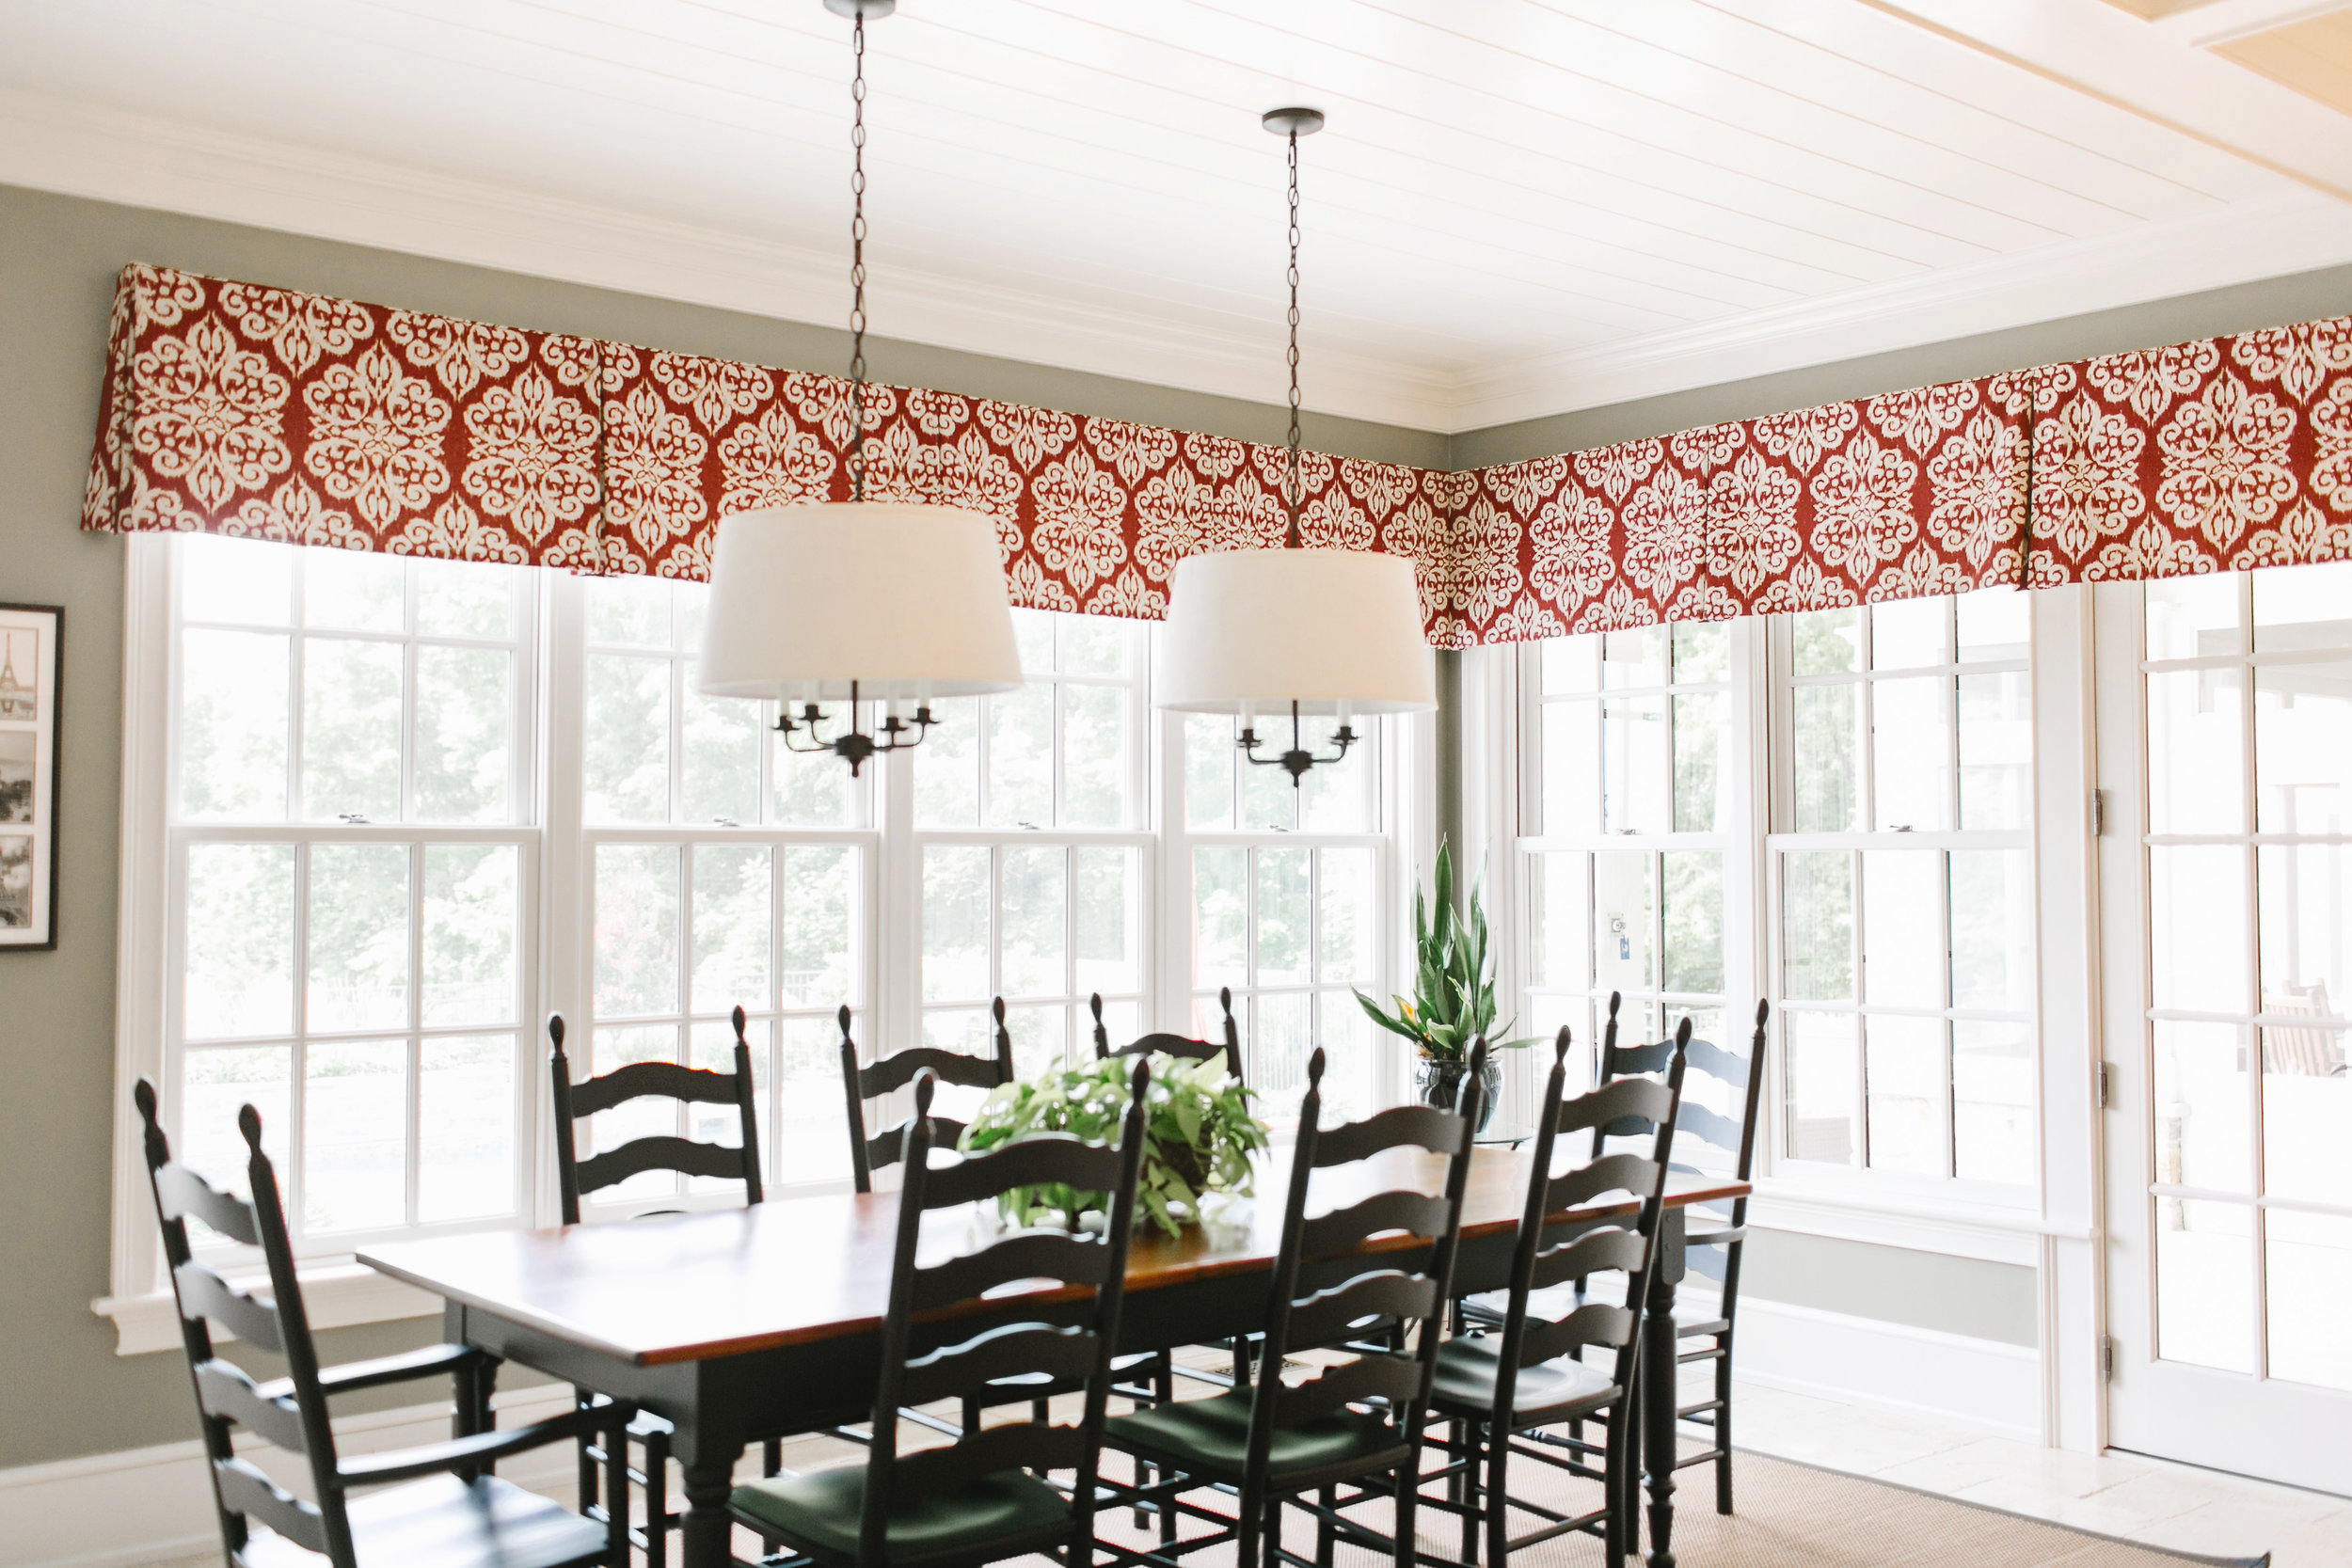 Interior design window treatments in a home